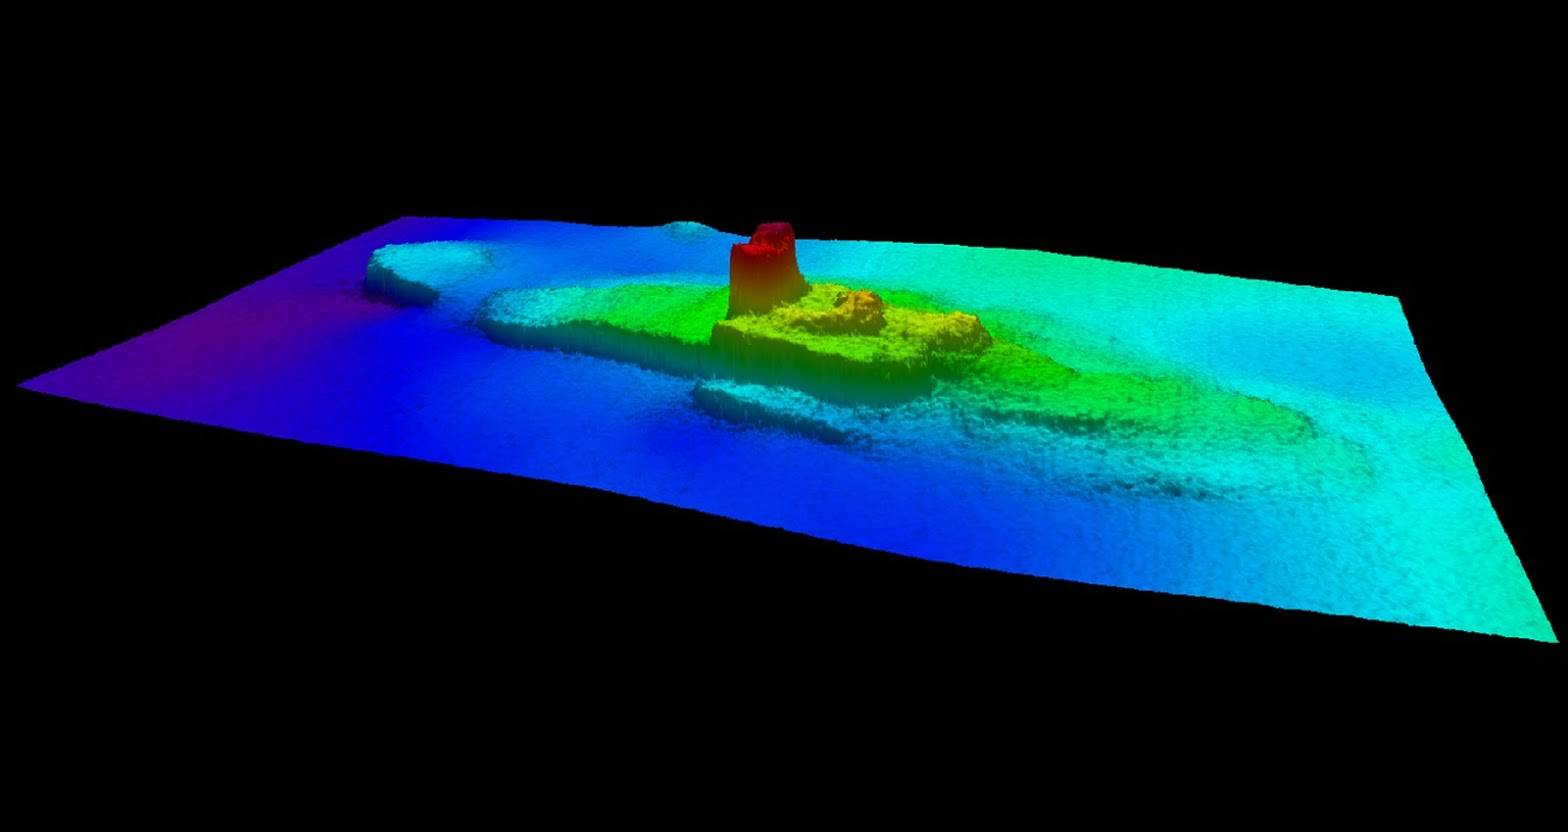 19th Century Shipwreck Found Off Golden Gate